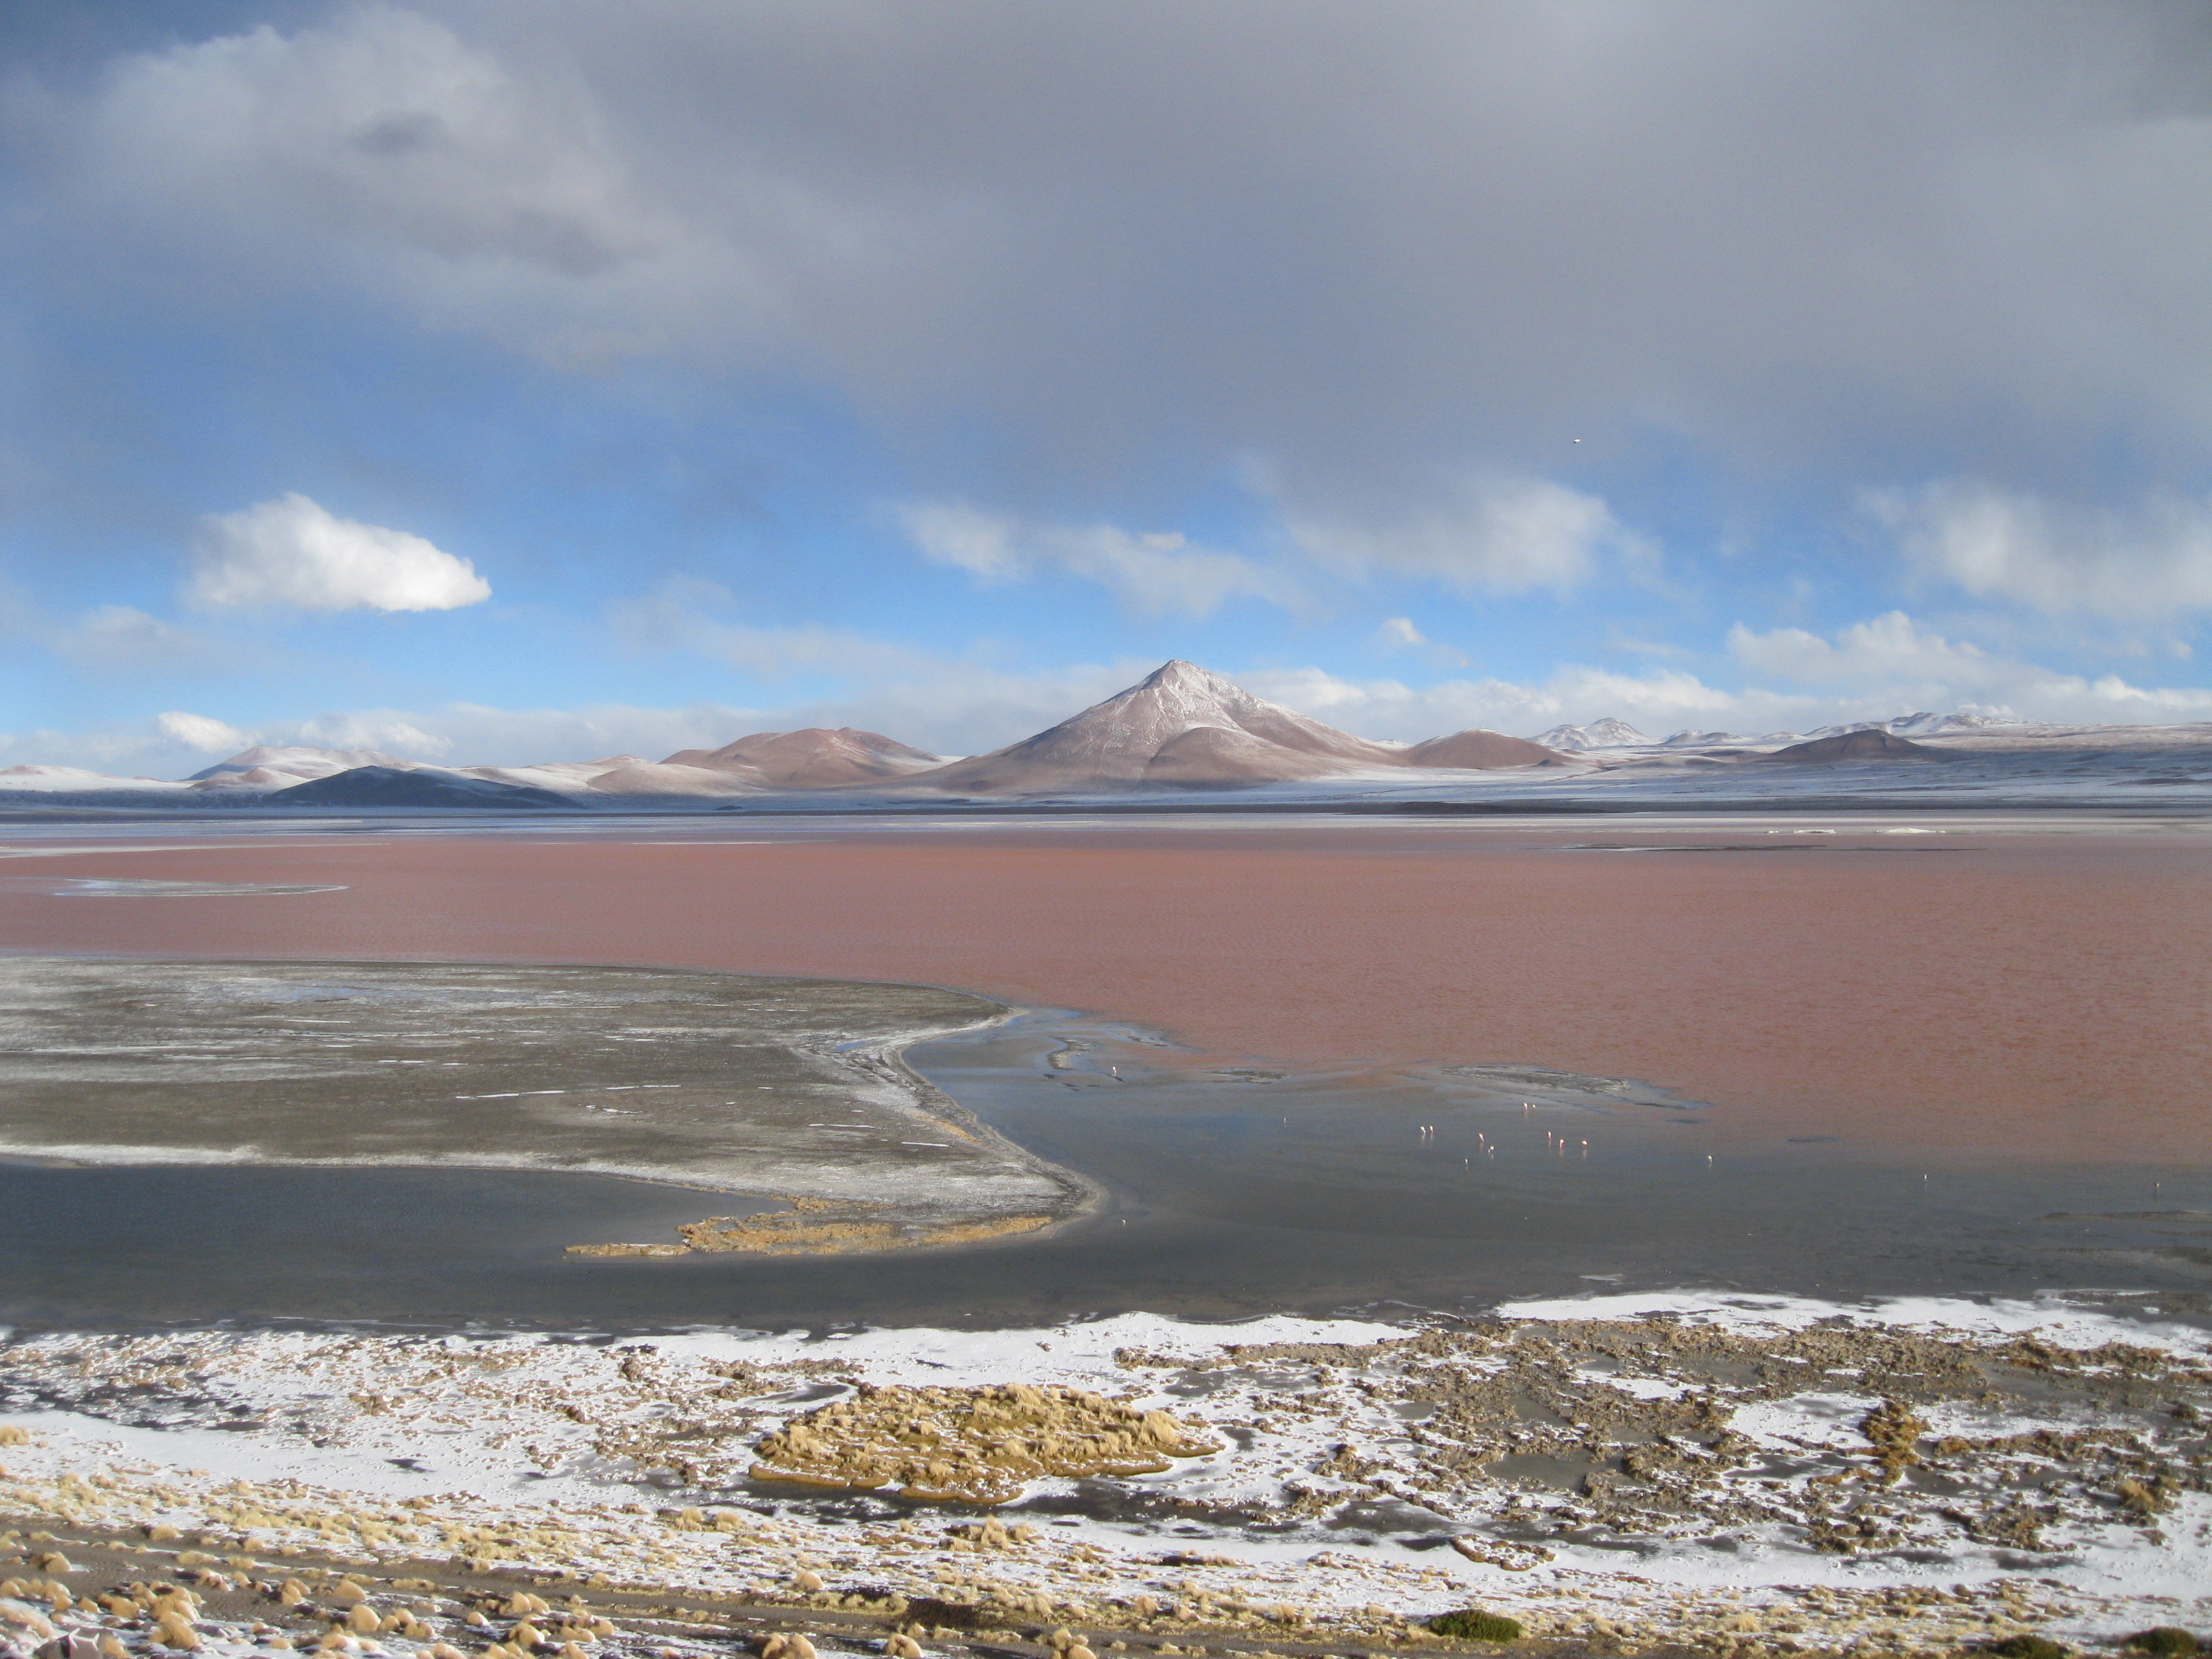 We include products we think are useful for our readers. Salar de Uyuni: Your Guide to the Bolivian Salt Flats